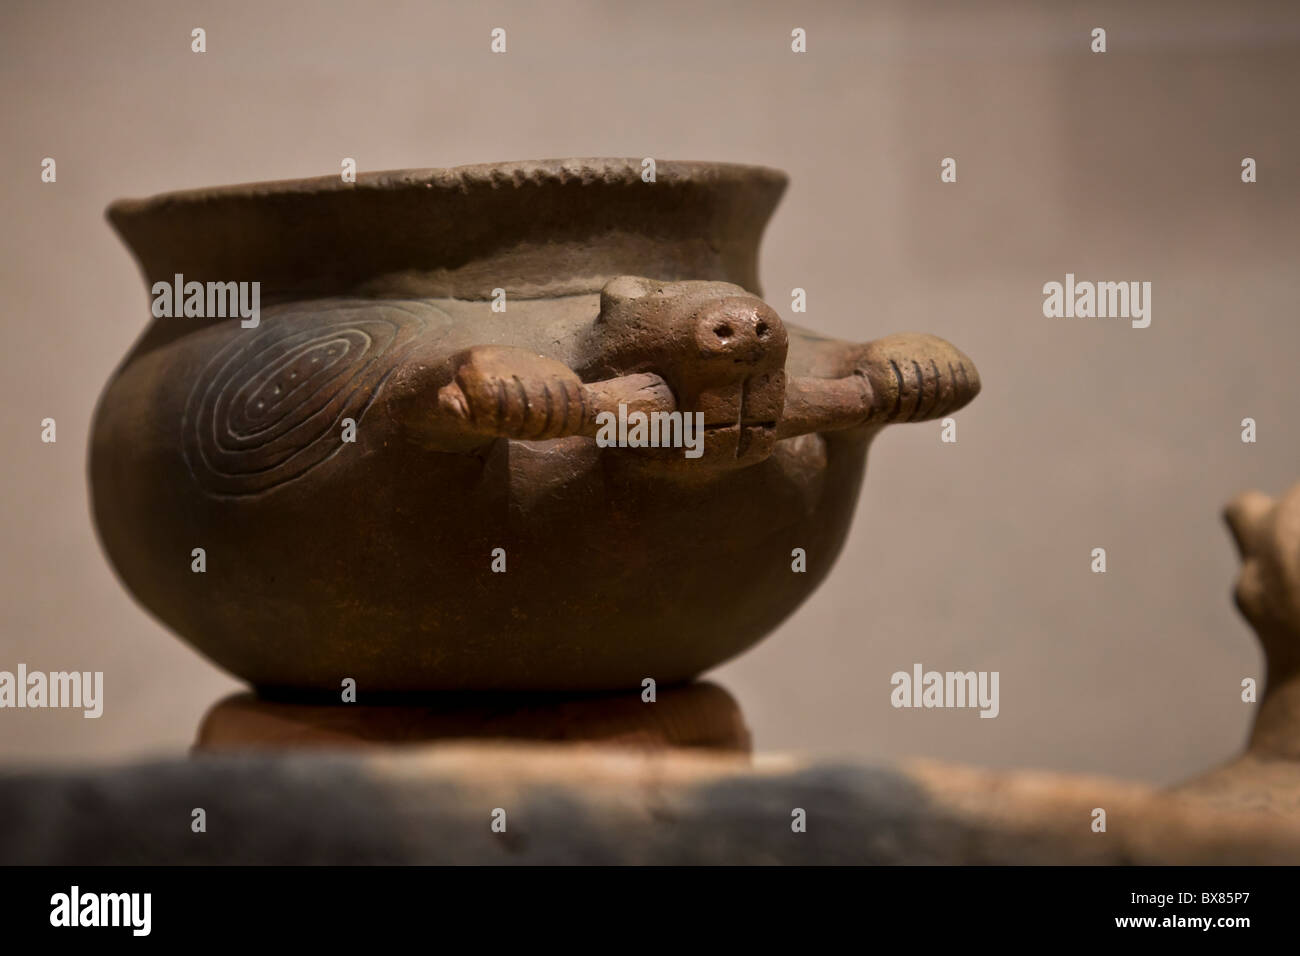 Mississippian period vessel with beaver representation found at Cahokia Mounds State Historic Site, Illinois, USA. - Stock Image